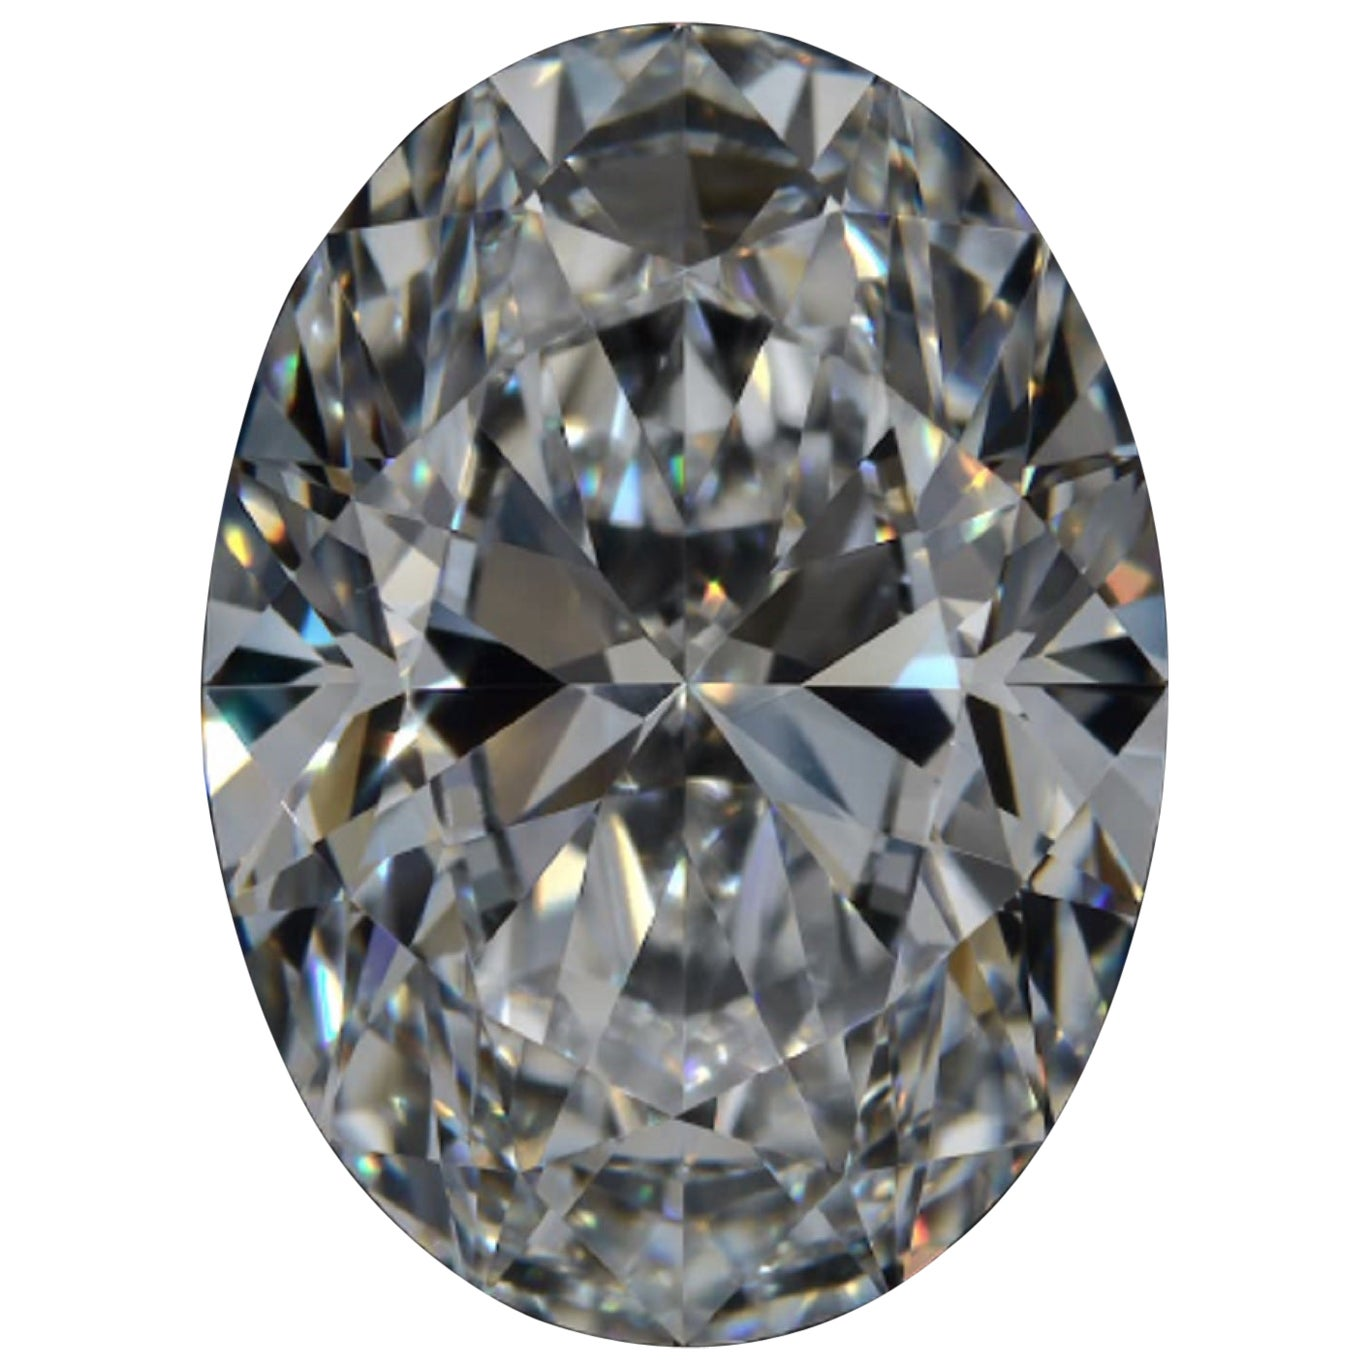 Internally Flawless D Color GIA Certified 8.13 Carat Oval Diamond